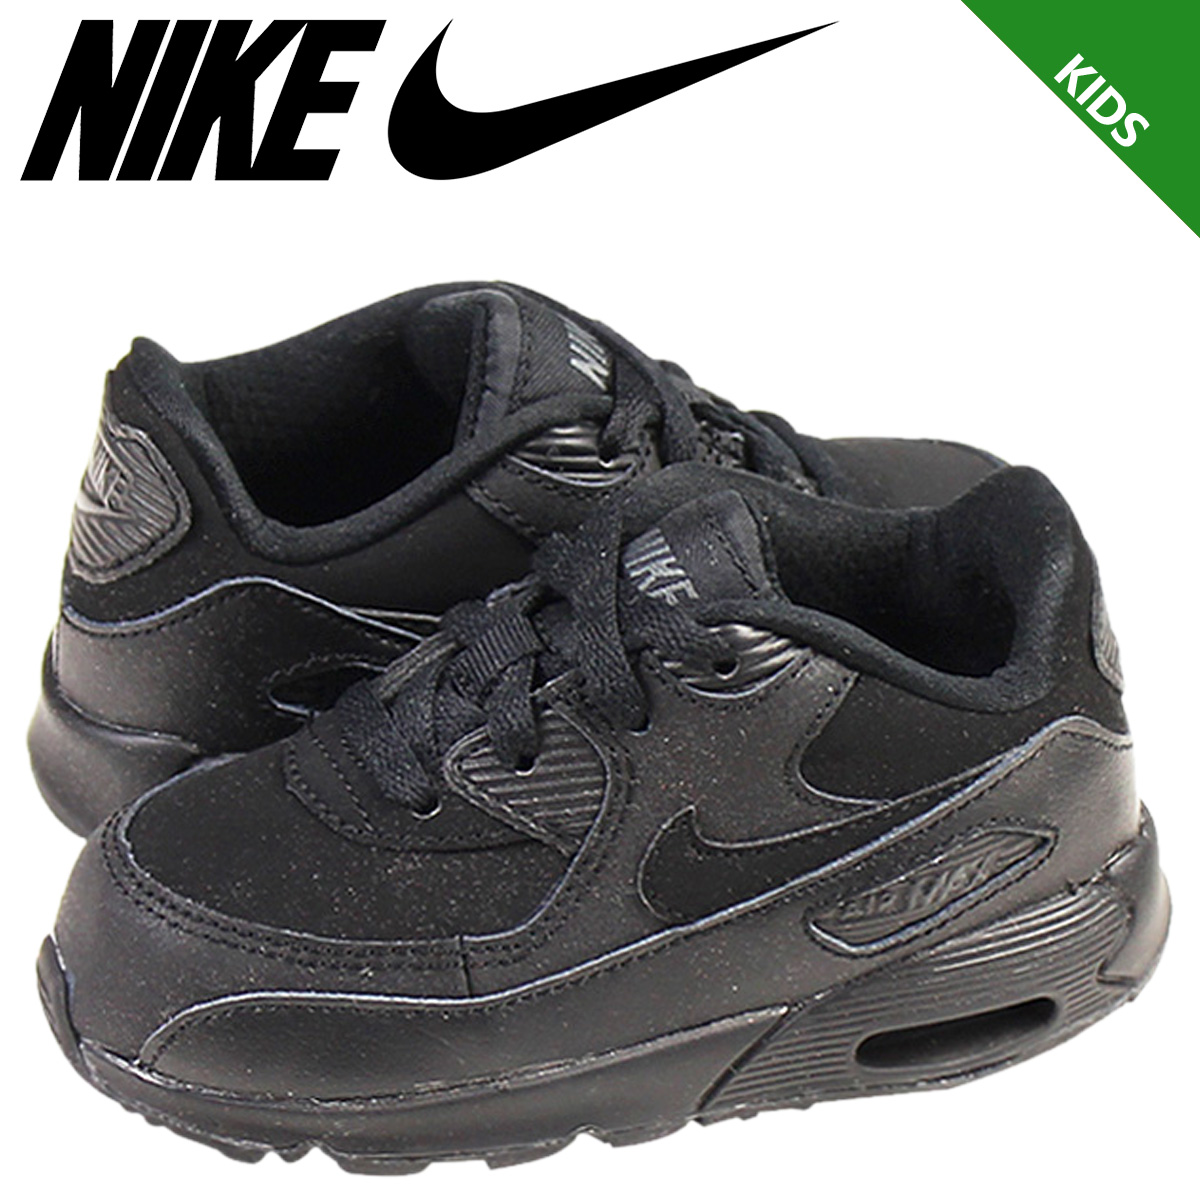 ALLSPORTS  Nike NIKE baby kids AIR MAX 90 BT sneakers Air Max 90 baby  toddler junior kids BABY TODDLER 408110-091-leather  11   12 new stock    regular  ... 40395dc8563e